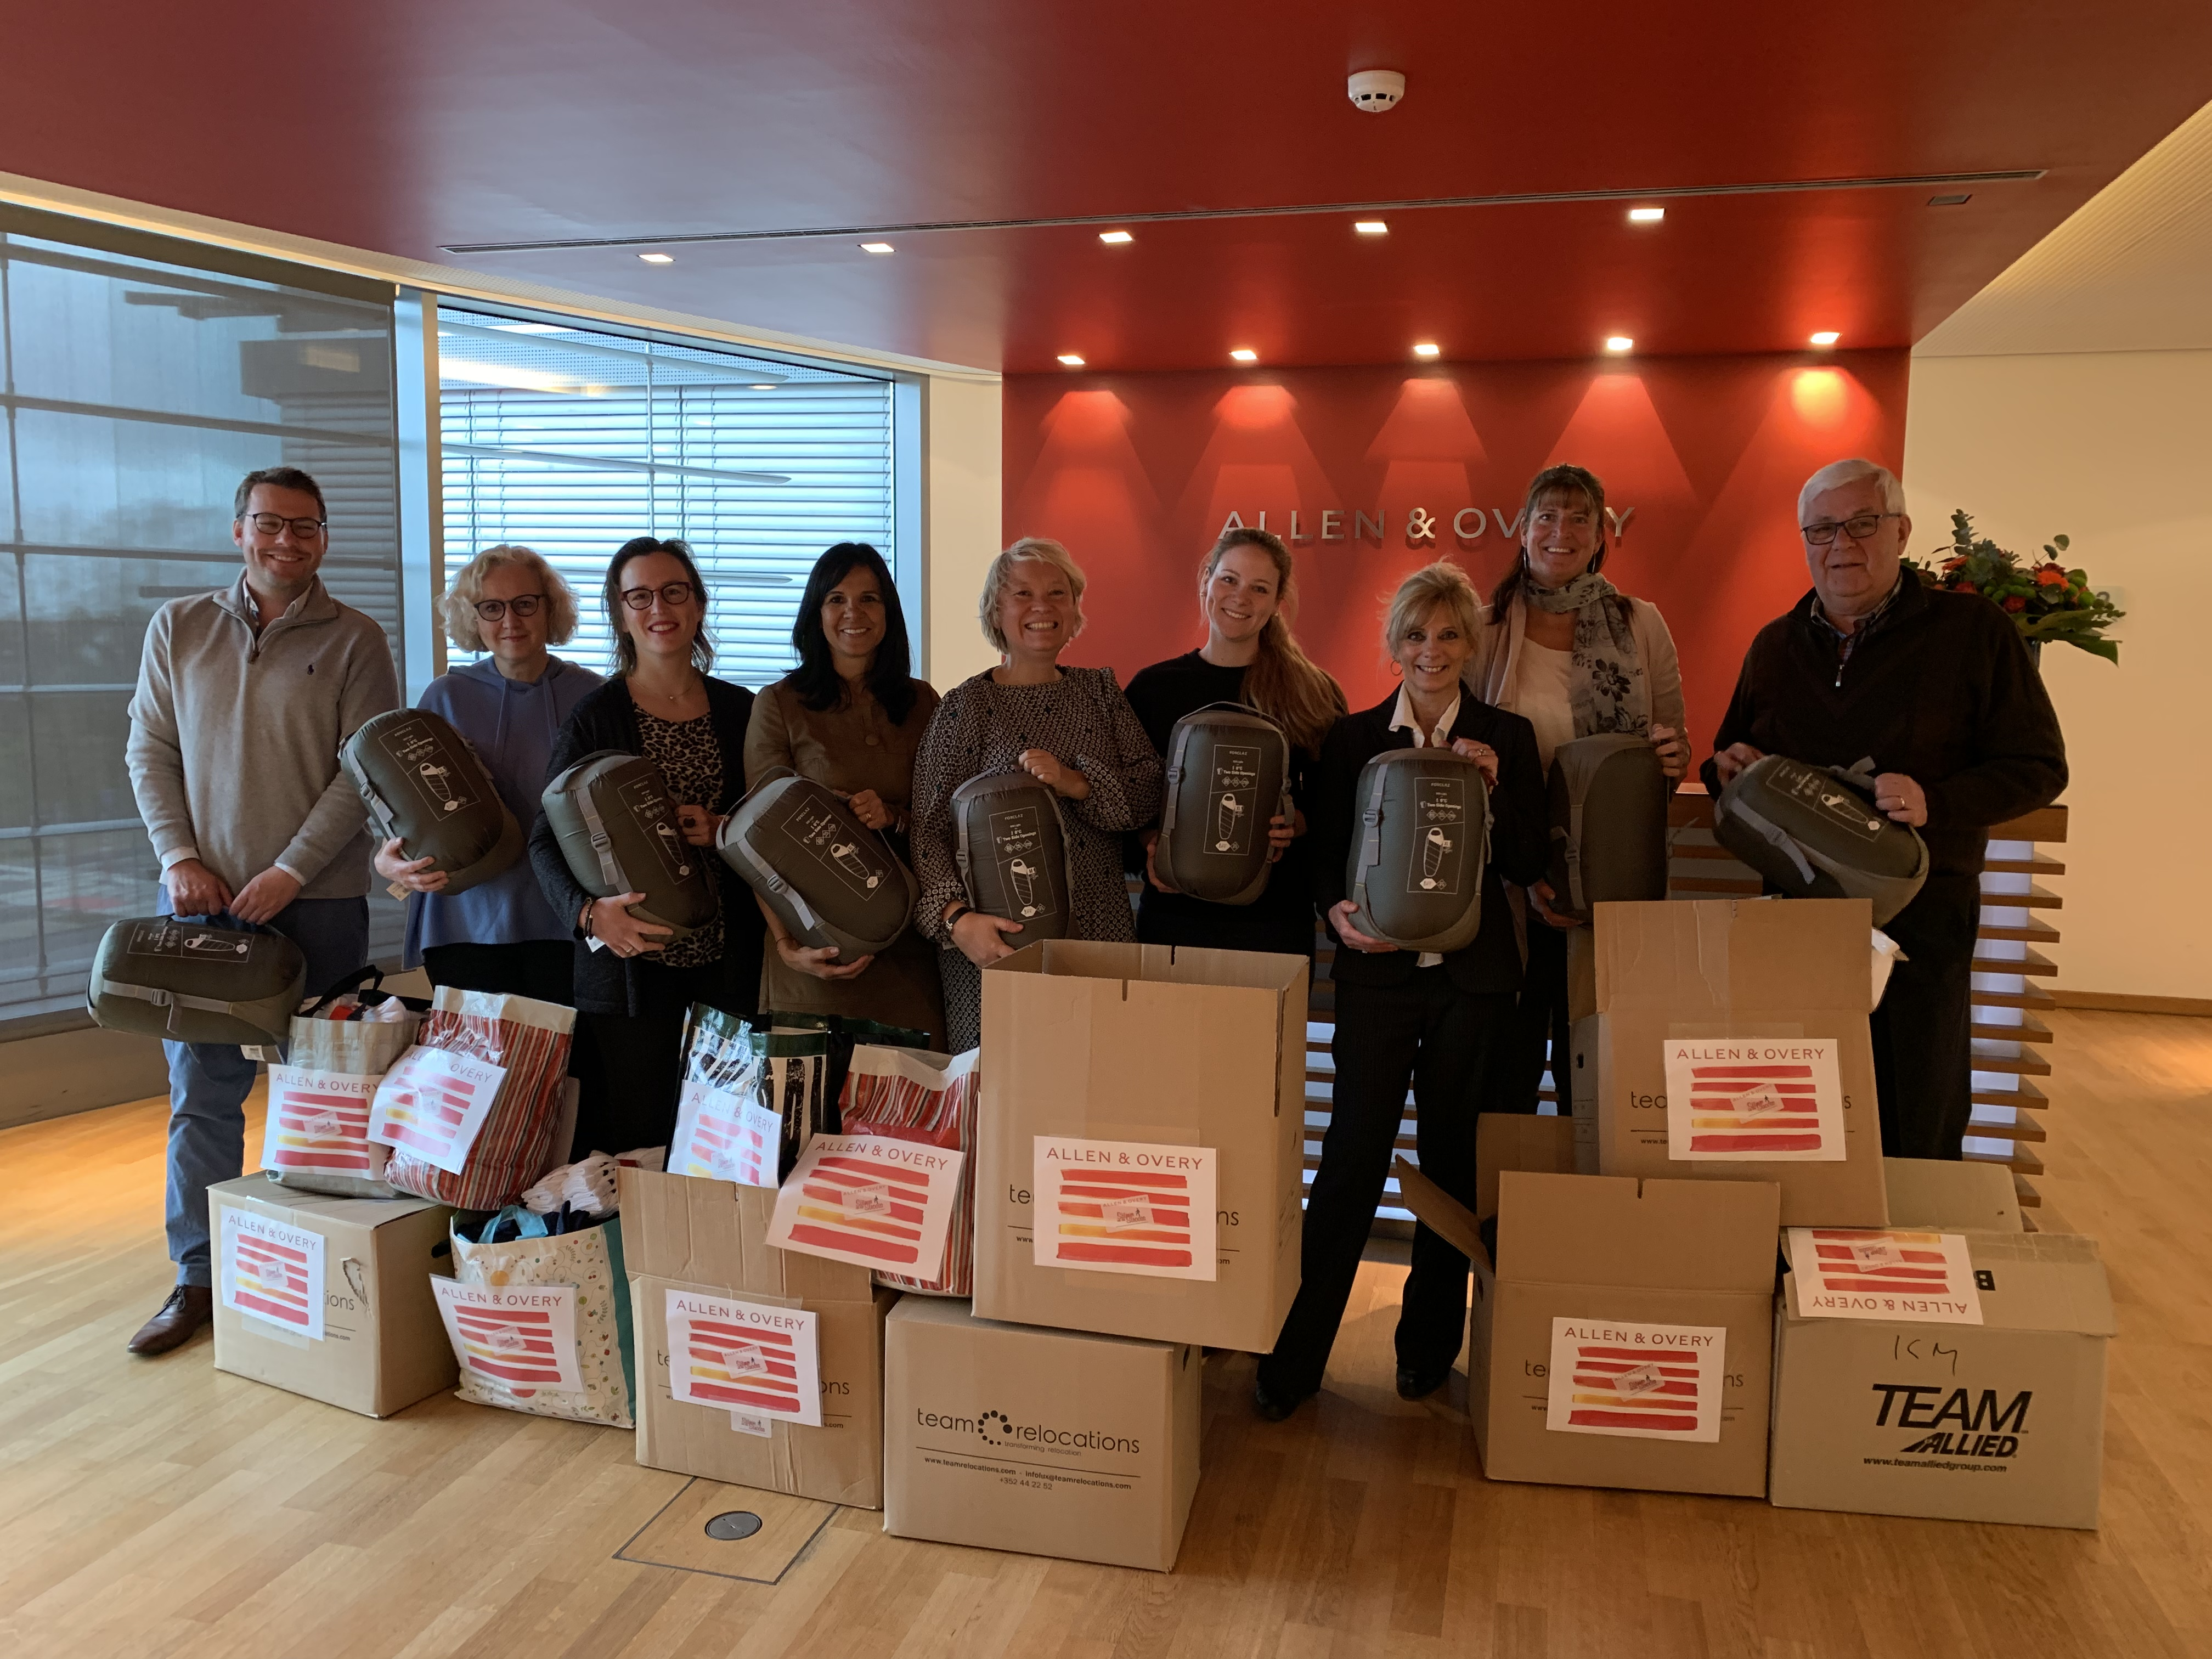 Allen & Overy donates sleeping bags and underwear